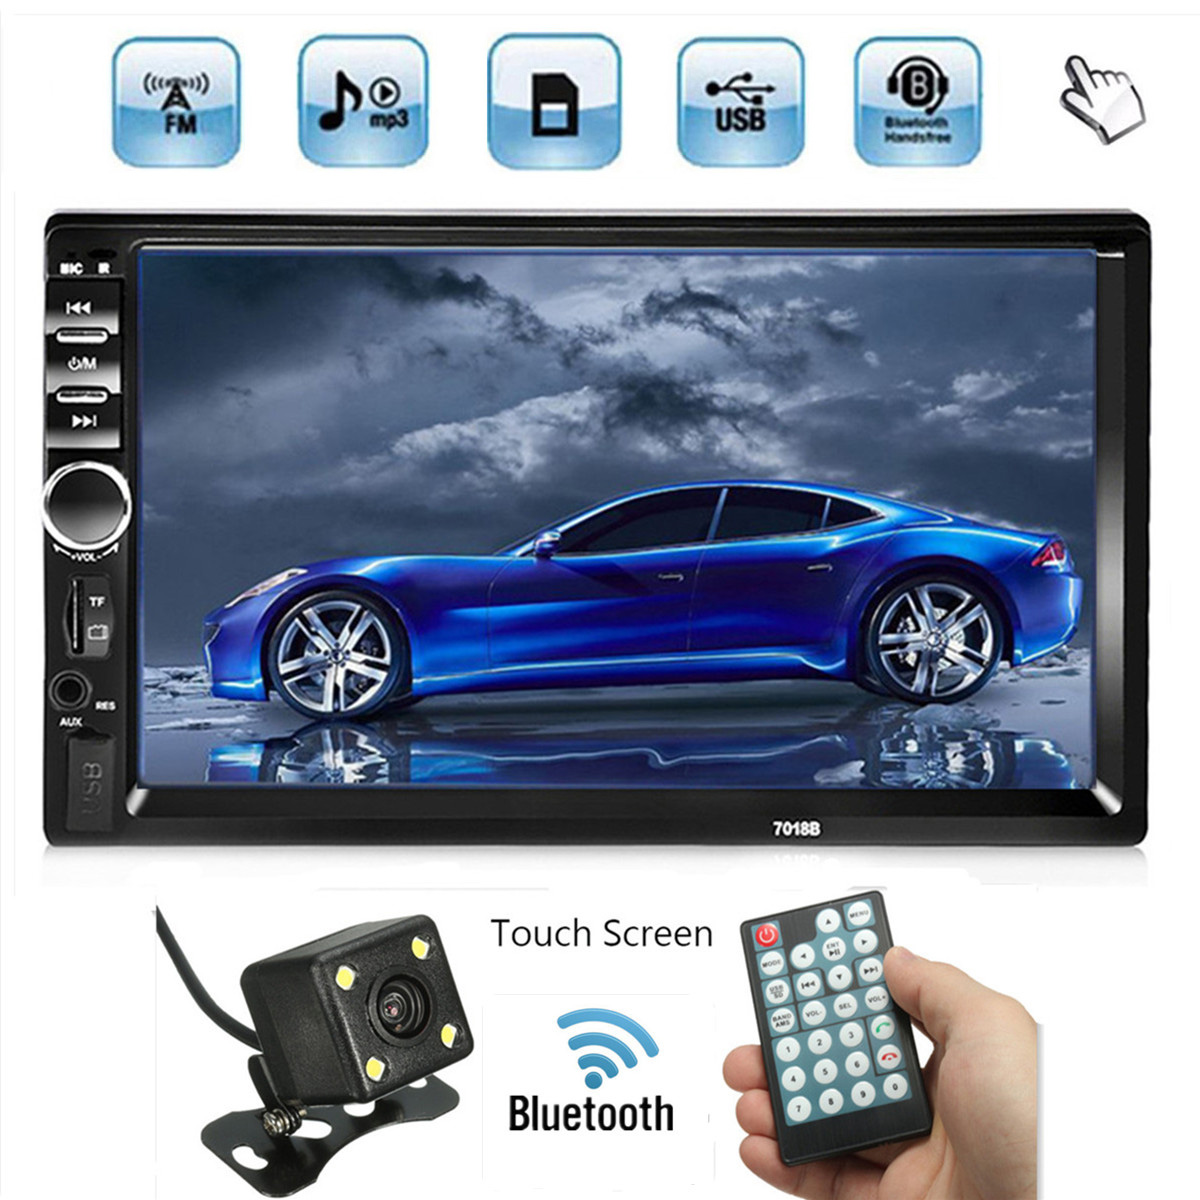 7'' Touch Screen 2 Din Car Radio Bluetooth 2 Din Auto Audio Player Stereo Bluetooth MP5 Support FM/MP5/USB/AUX Rear View Camera оперативная память 8gb pc3 12800 1600mhz ddr3 dimm foxline fl1600d3u11l 8g